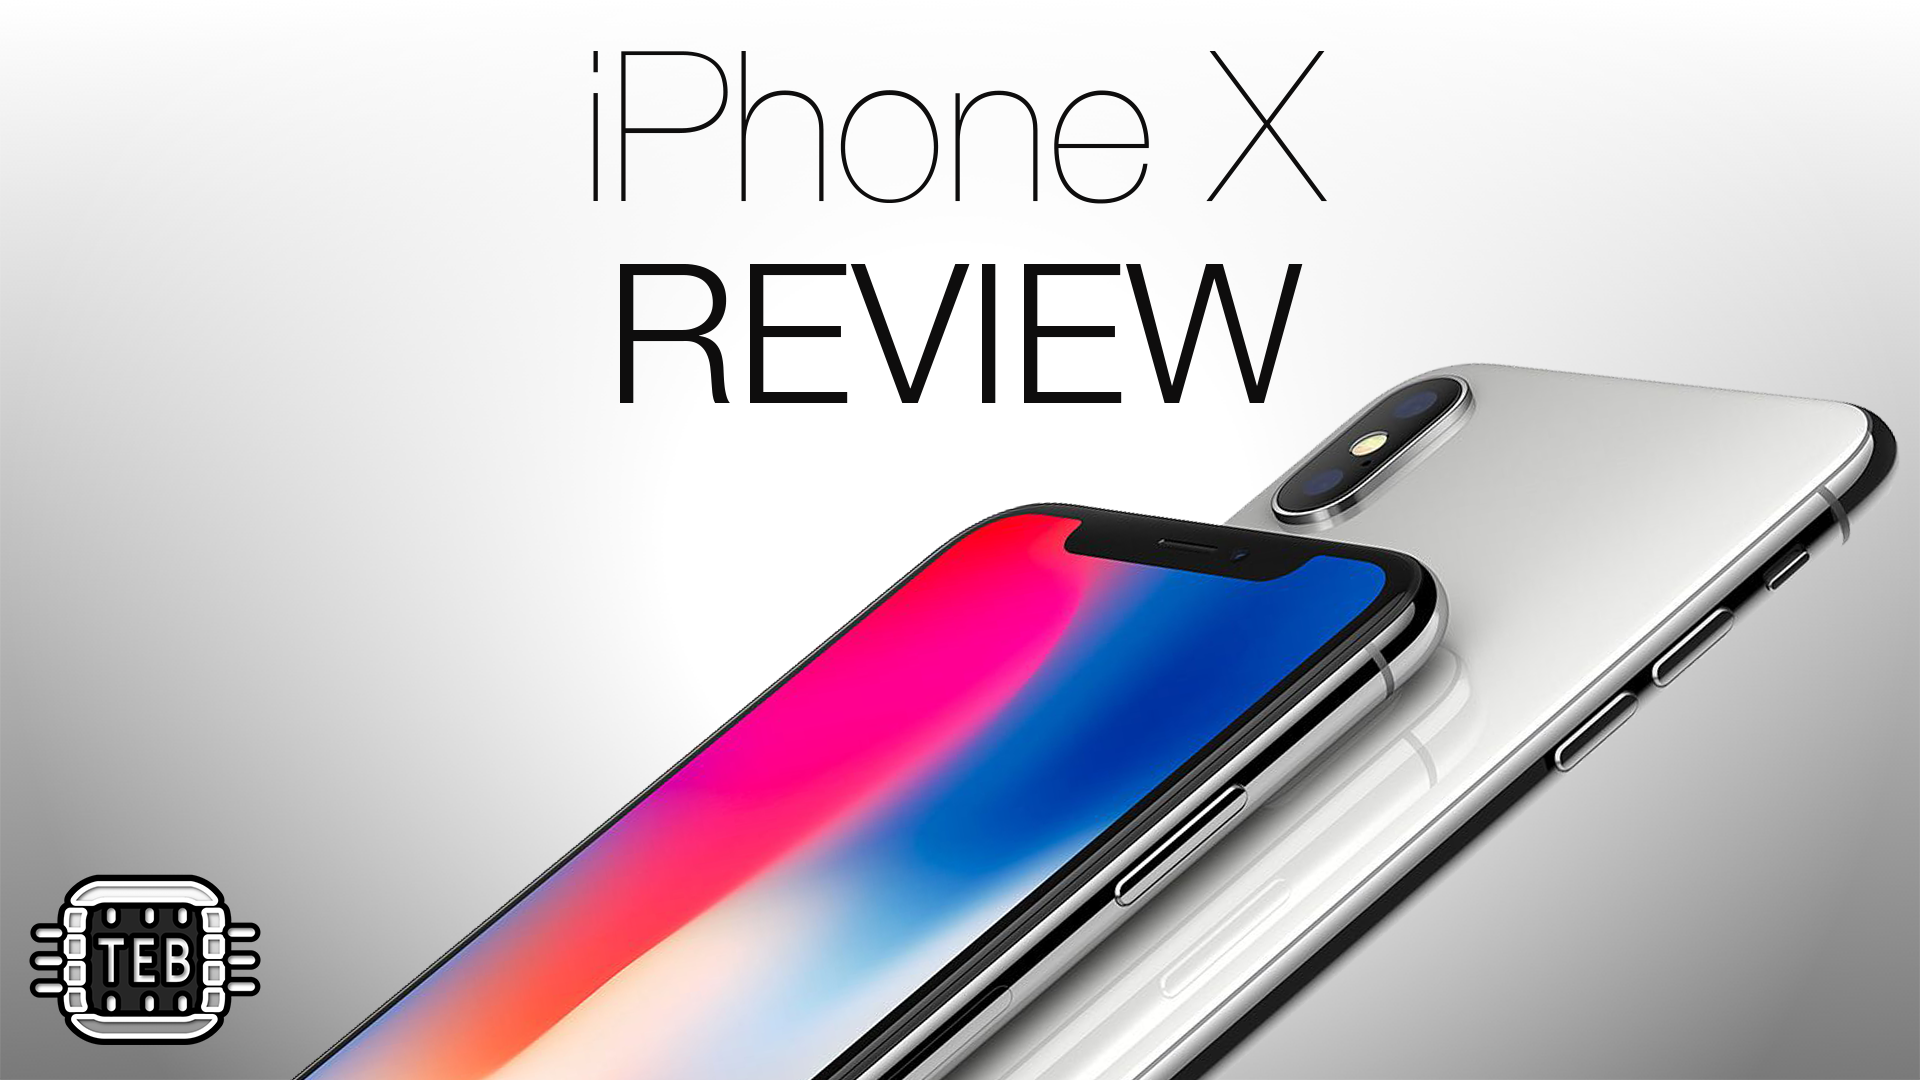 iPhone X: la recensione di TechEarthBlog del nuovo smartphone Apple [FOTO + VIDEO]